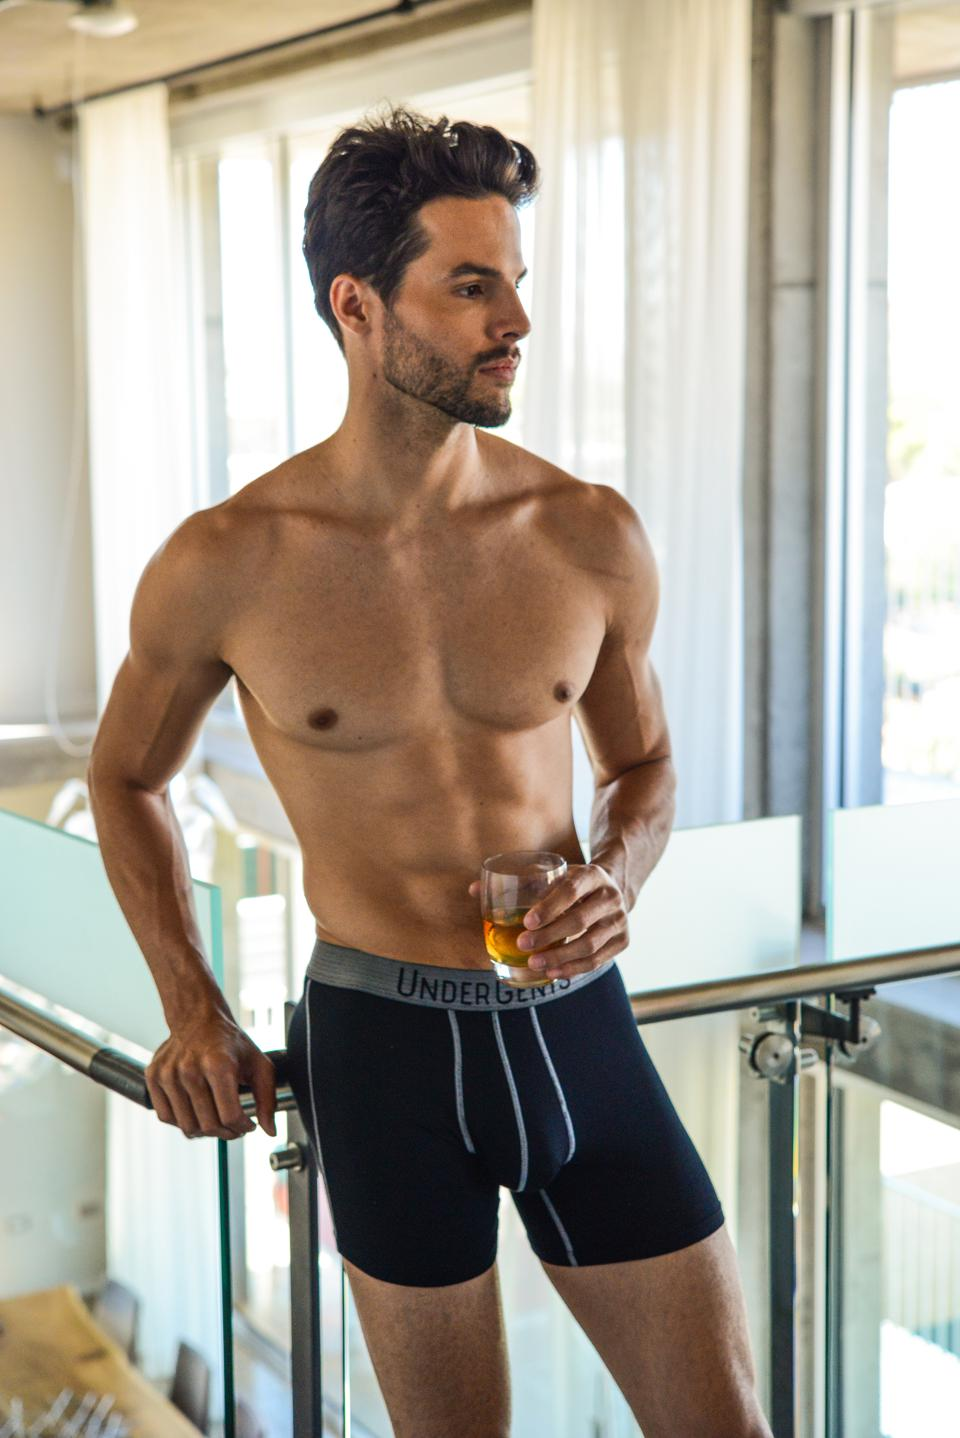 UnderGents Inspirato Boxer Brief - A must have for all day comfort without compression.